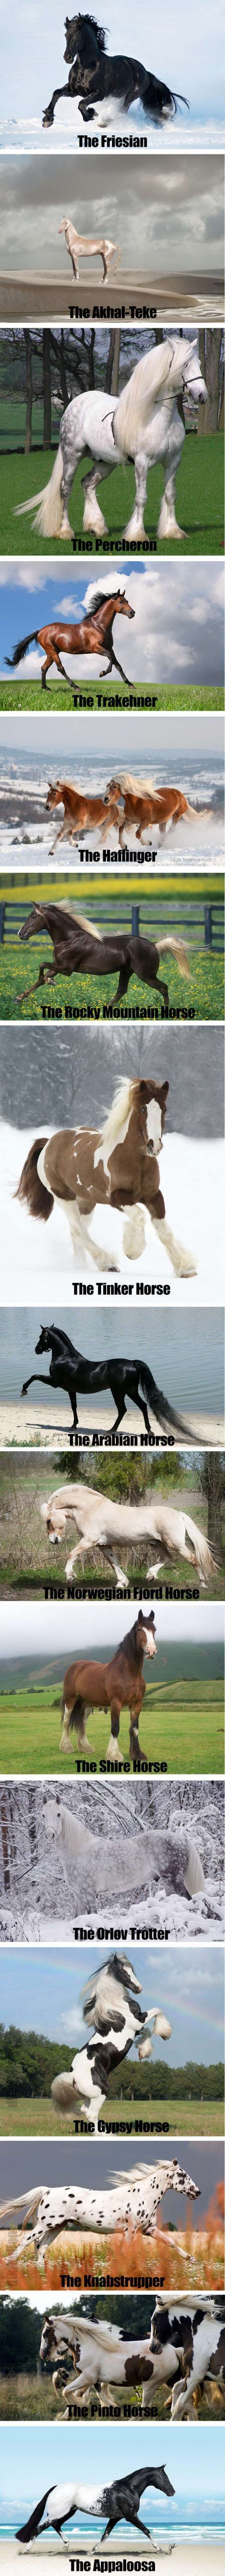 Breathtakingly Beautiful Horses on 9GAG